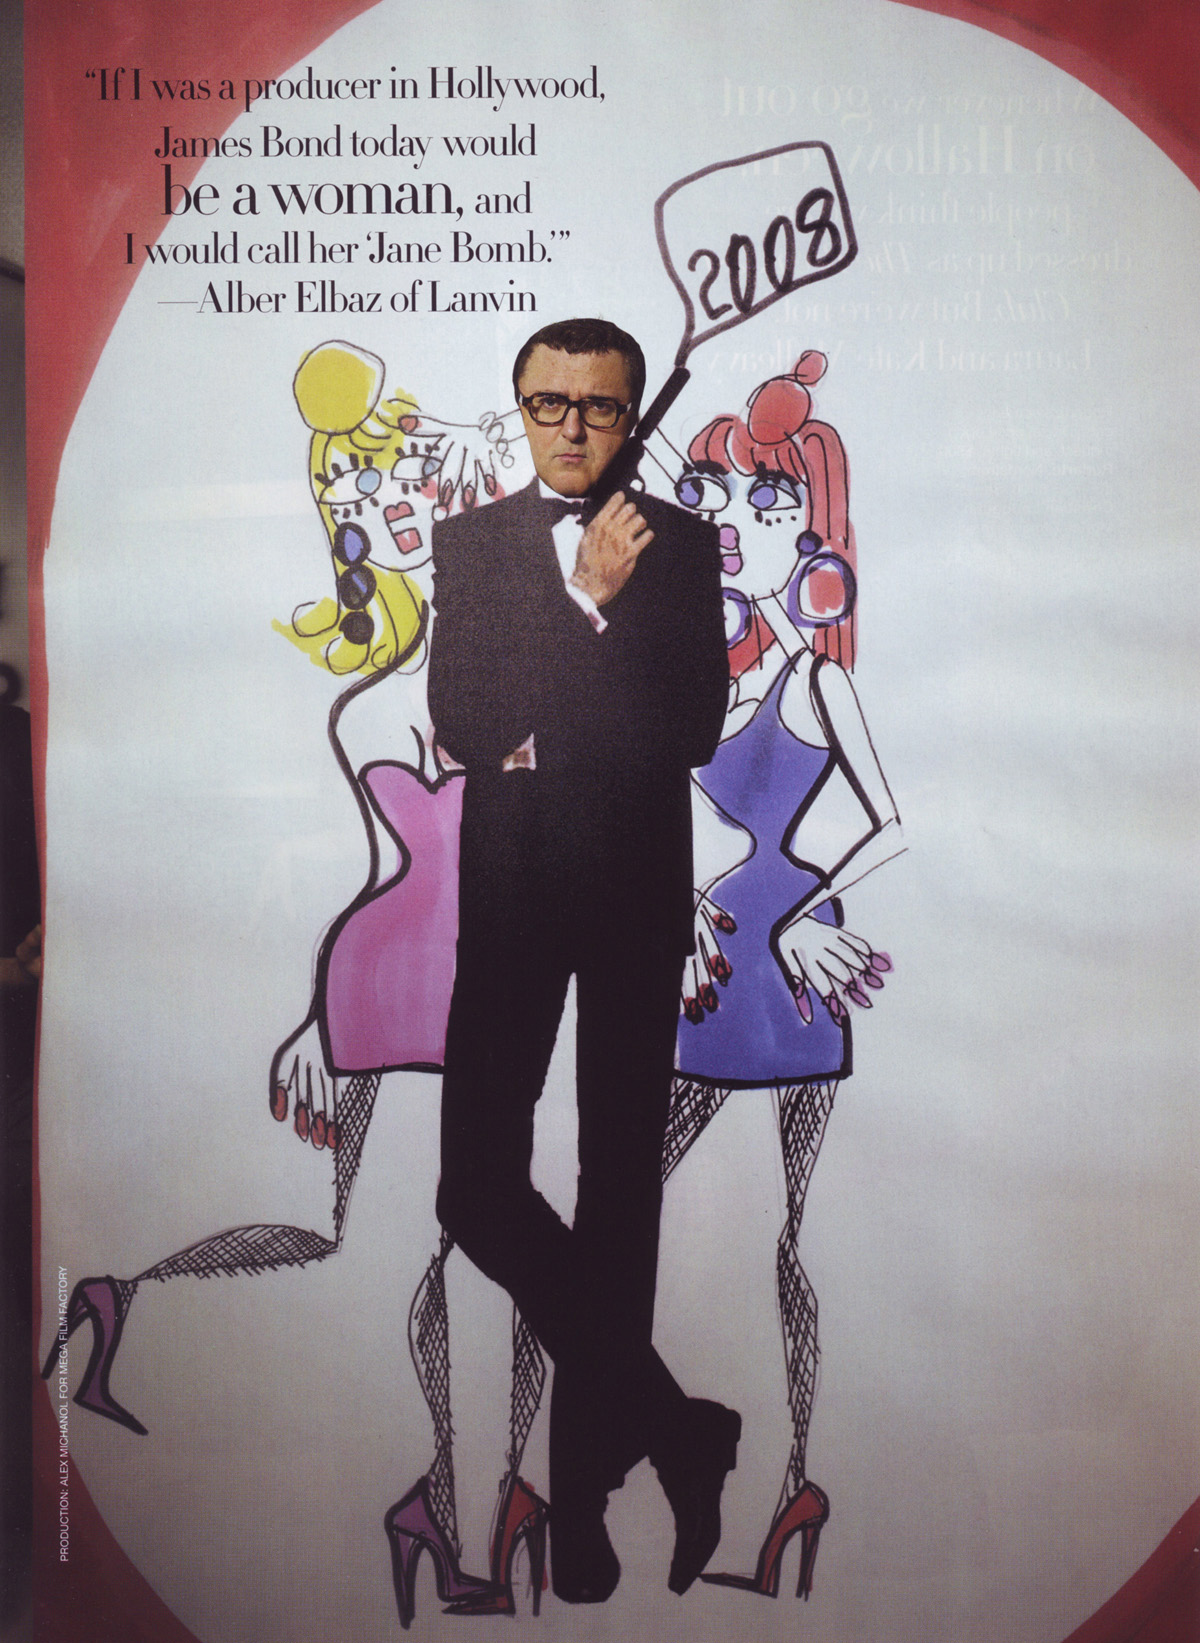 Alber Elbaz as a James Bond-like Hollywood producer.